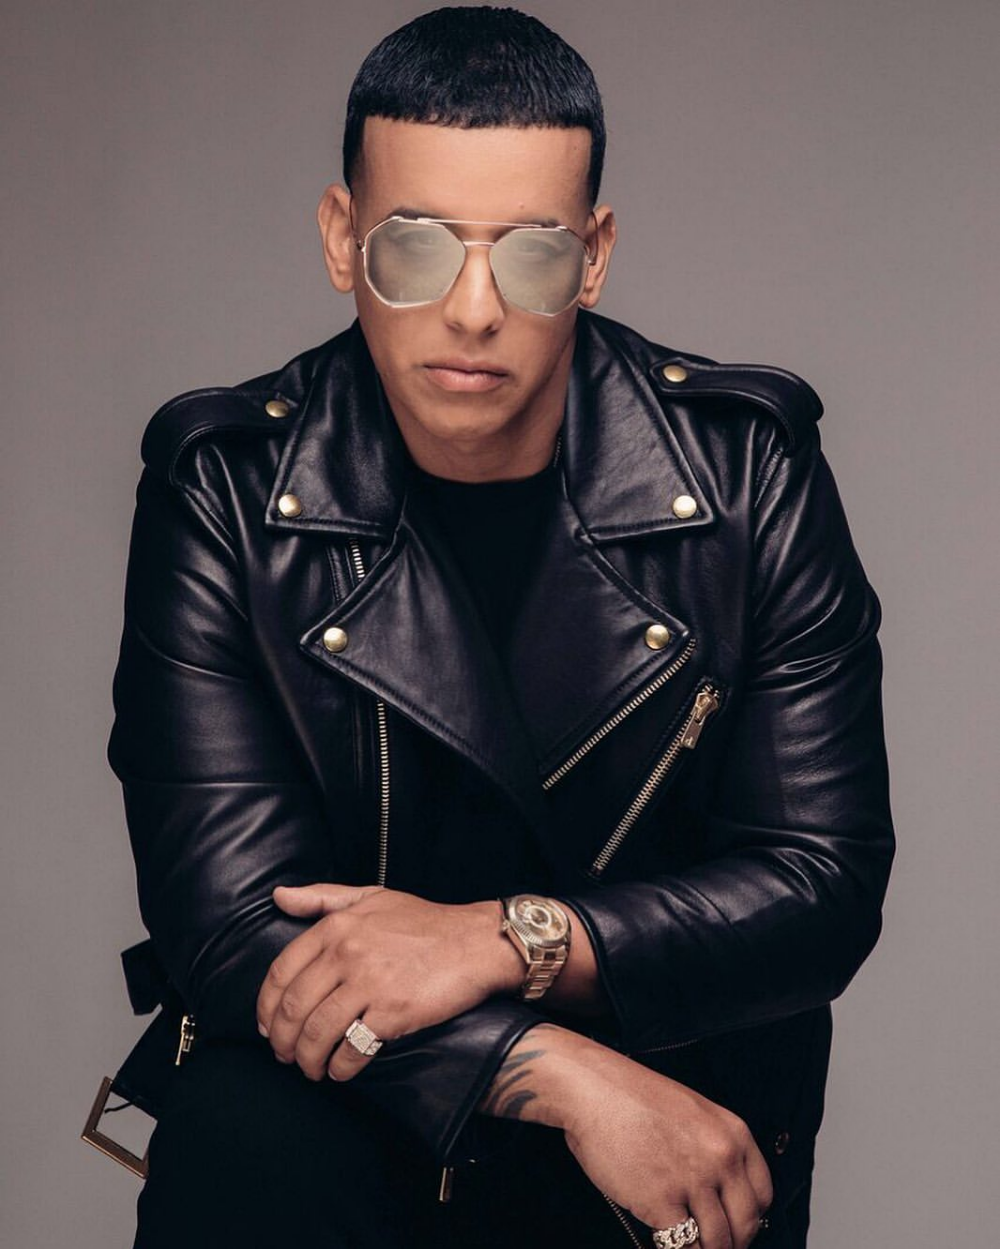 Pin By Maria Sosa On Discos De Daddy Yankee Daddy Yankee New Daddy Photo Today